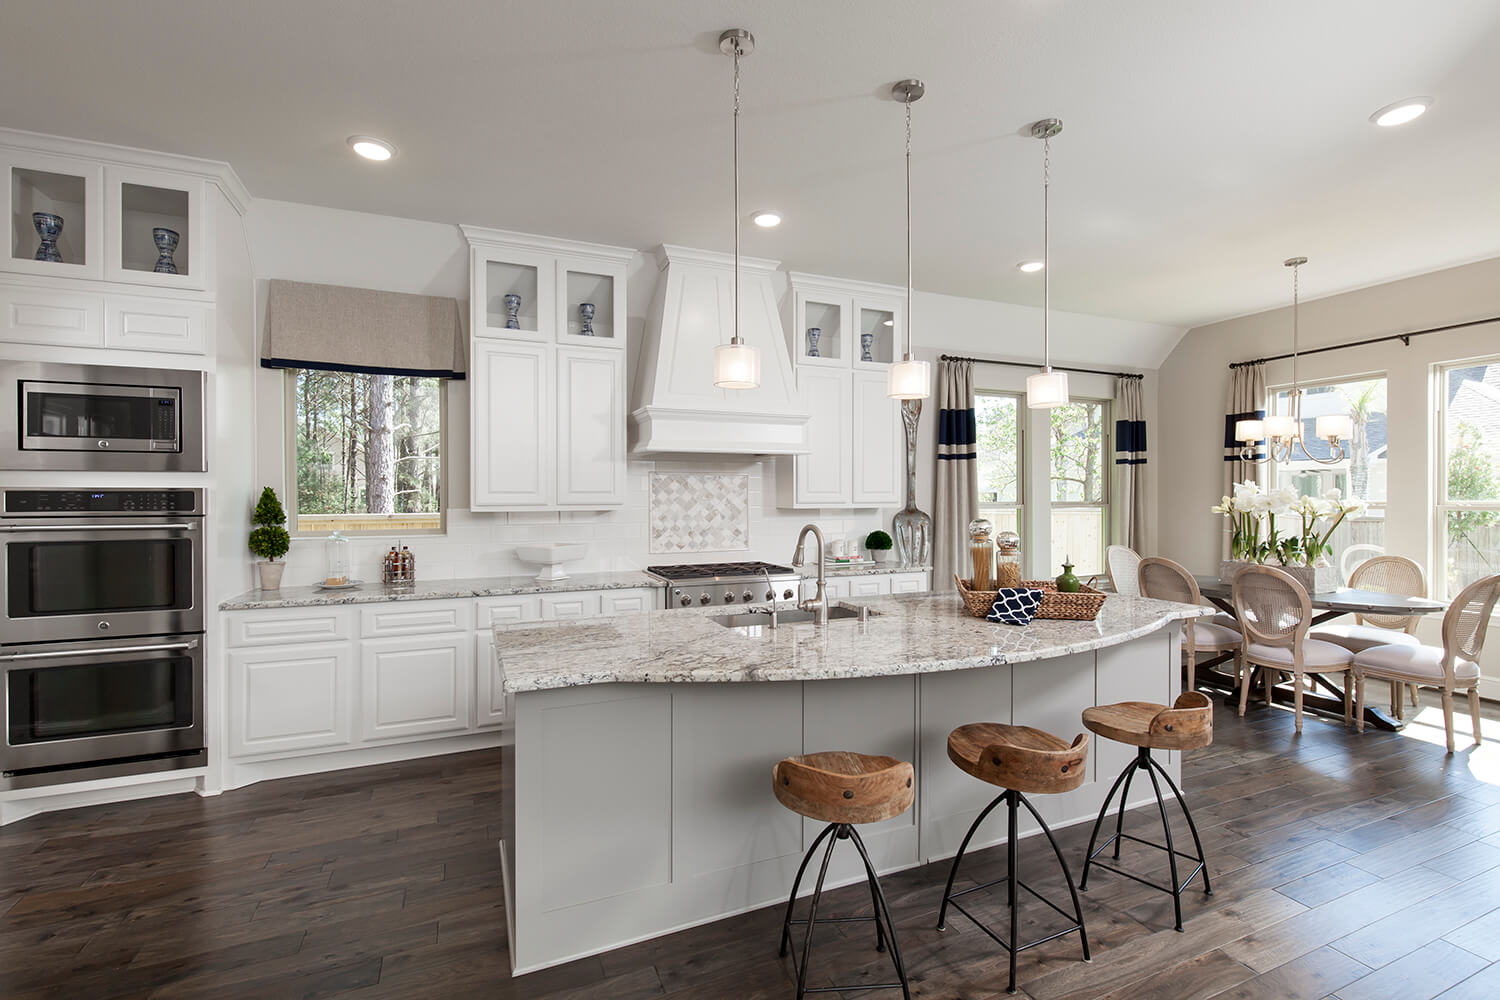 The Woodlands - Liberty Branch|75\' Homesites|New Homes By Coventry Homes